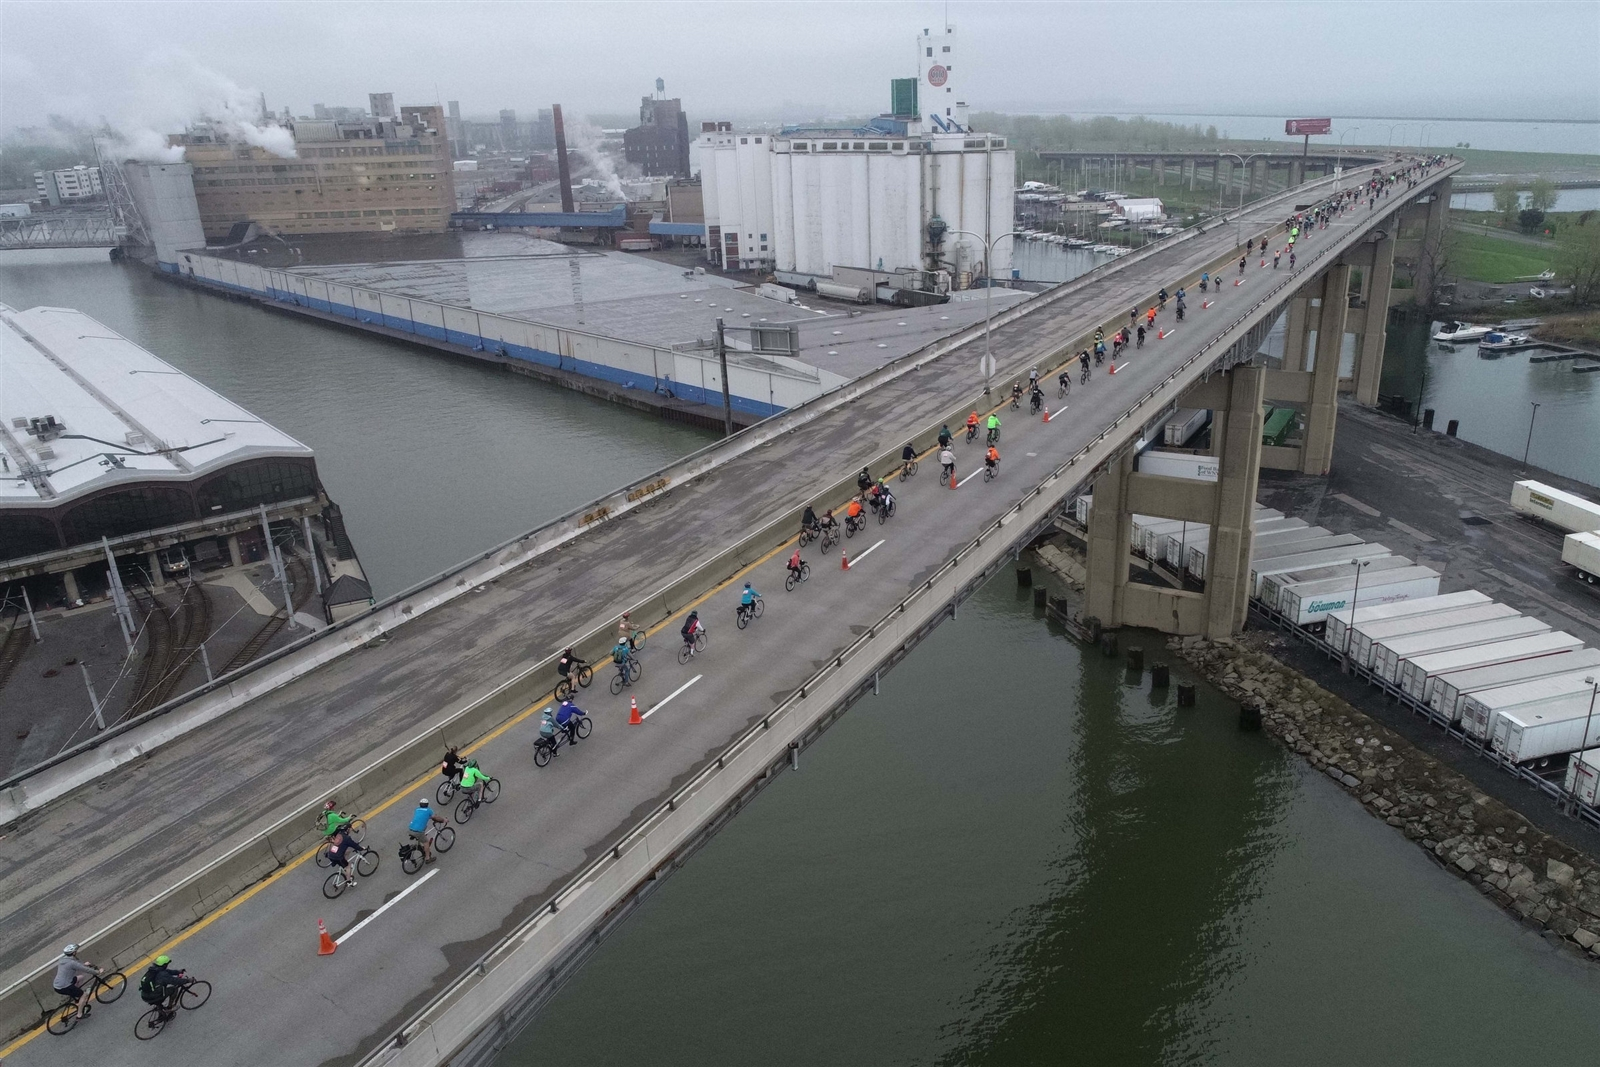 The annual bicycle event takes riders over the Skyway and this year onto the Kensington and Scajaquada Expressways in 10-mile and 18-mile routes in a celebration of bicycle access and awareness and healthy living.